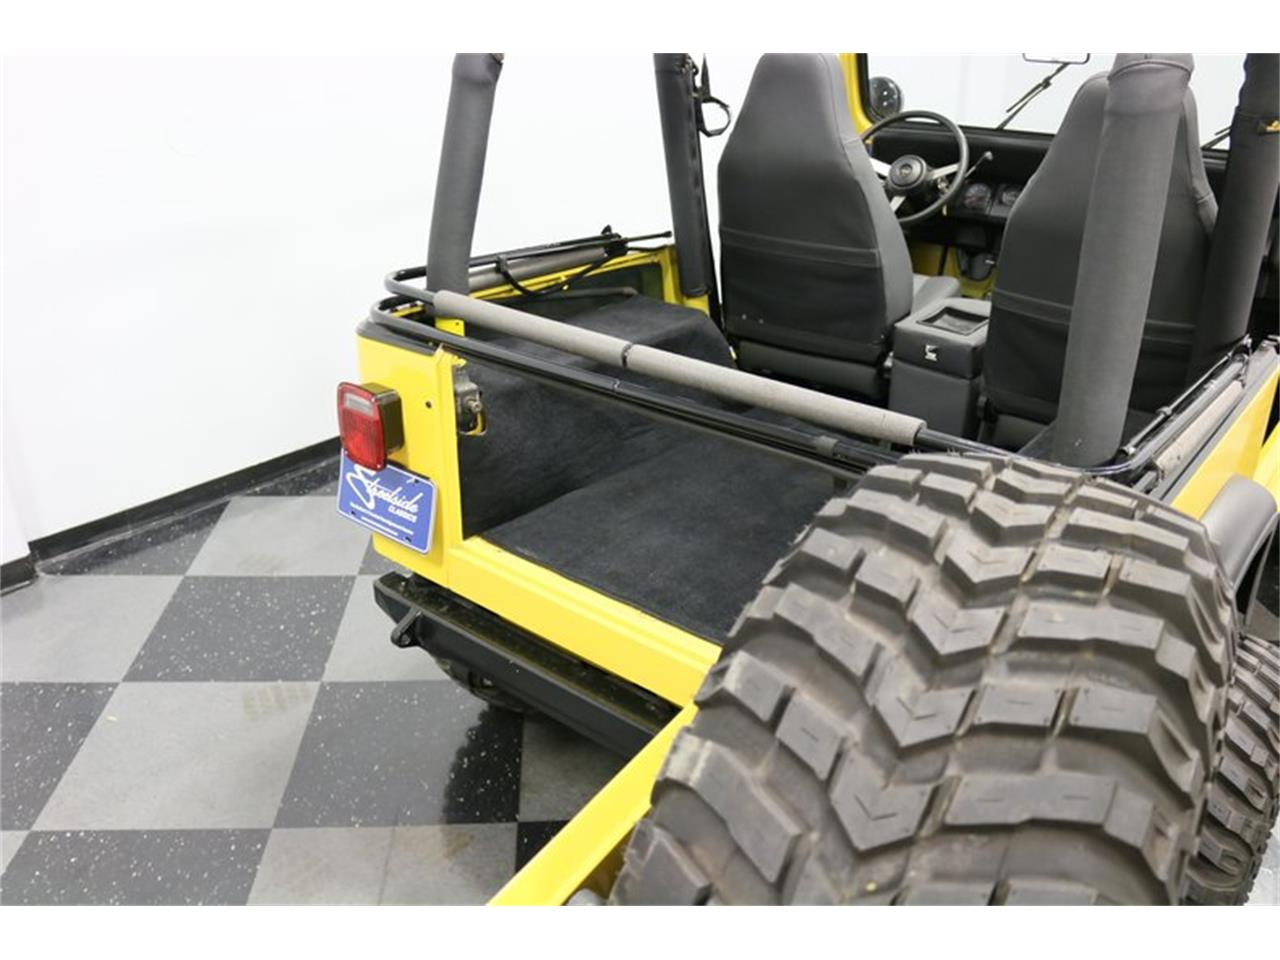 Large Picture of 1993 Jeep Wrangler - $25,995.00 Offered by Streetside Classics - Dallas / Fort Worth - P701